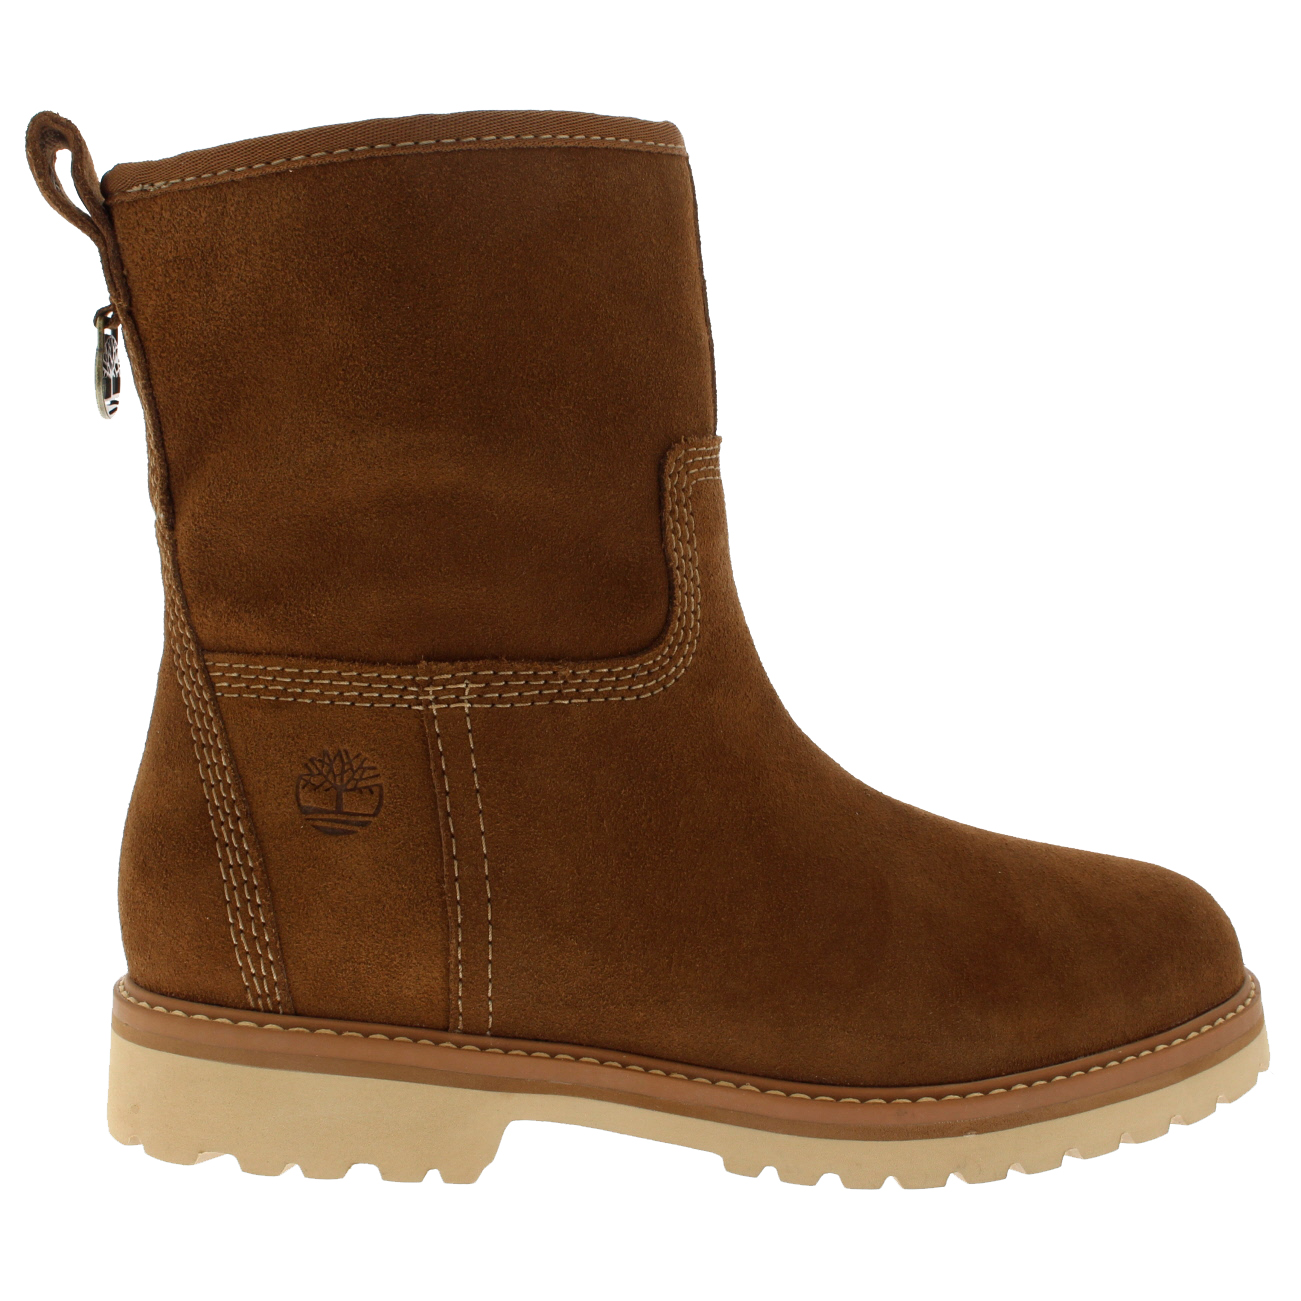 d367b5df790afc Damen-Timberland-Chamonix-Valley-Winter-Wasserdicht-Wildleder-Stiefel-